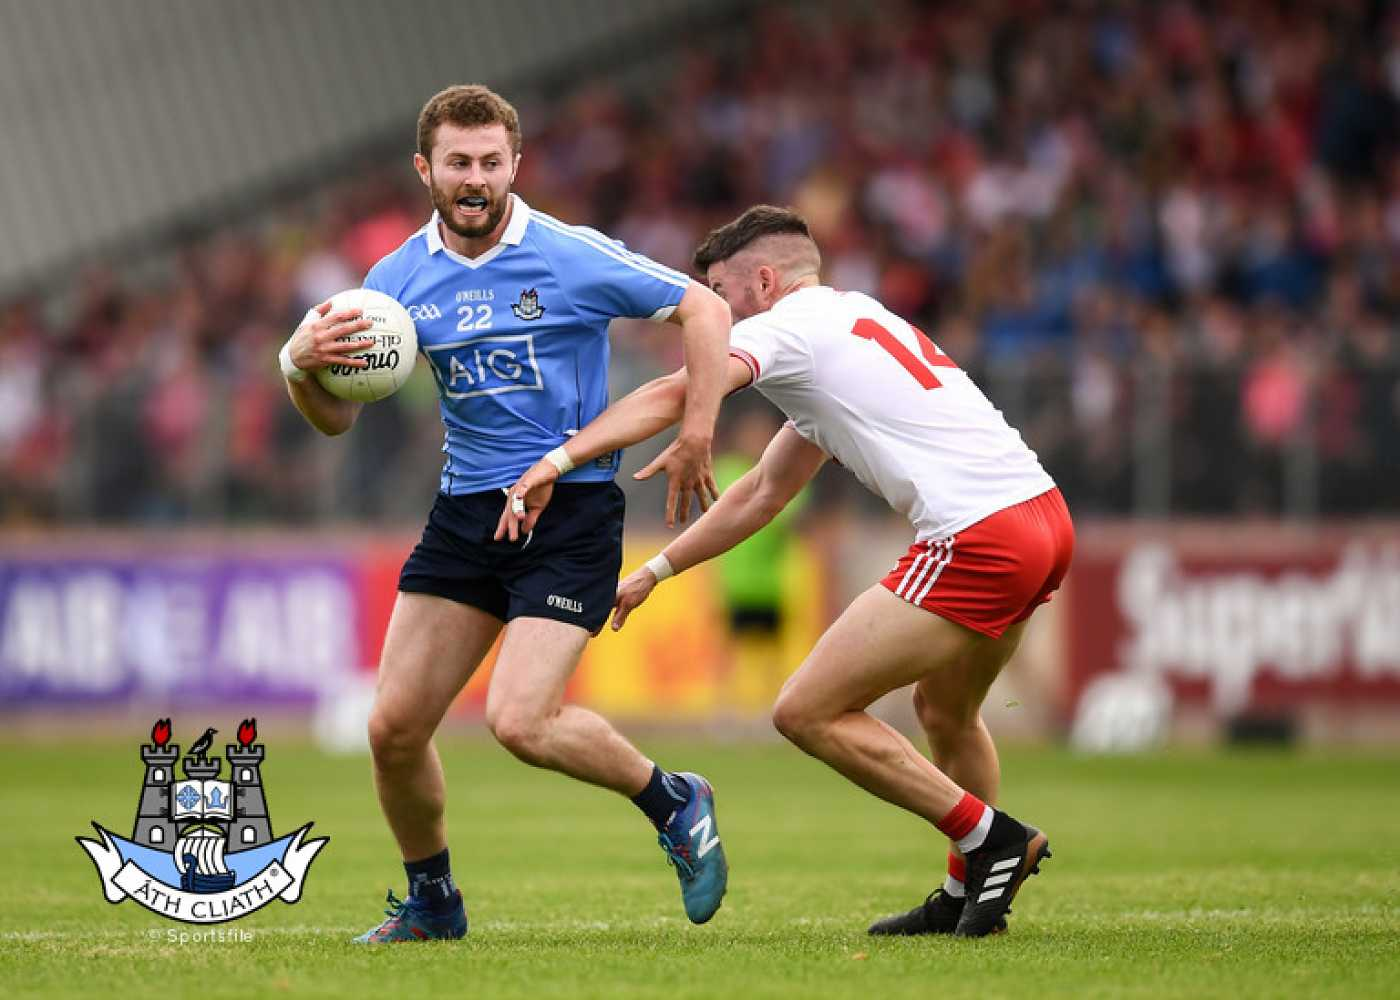 We will leave no stone unturned: Jack McCaffrey